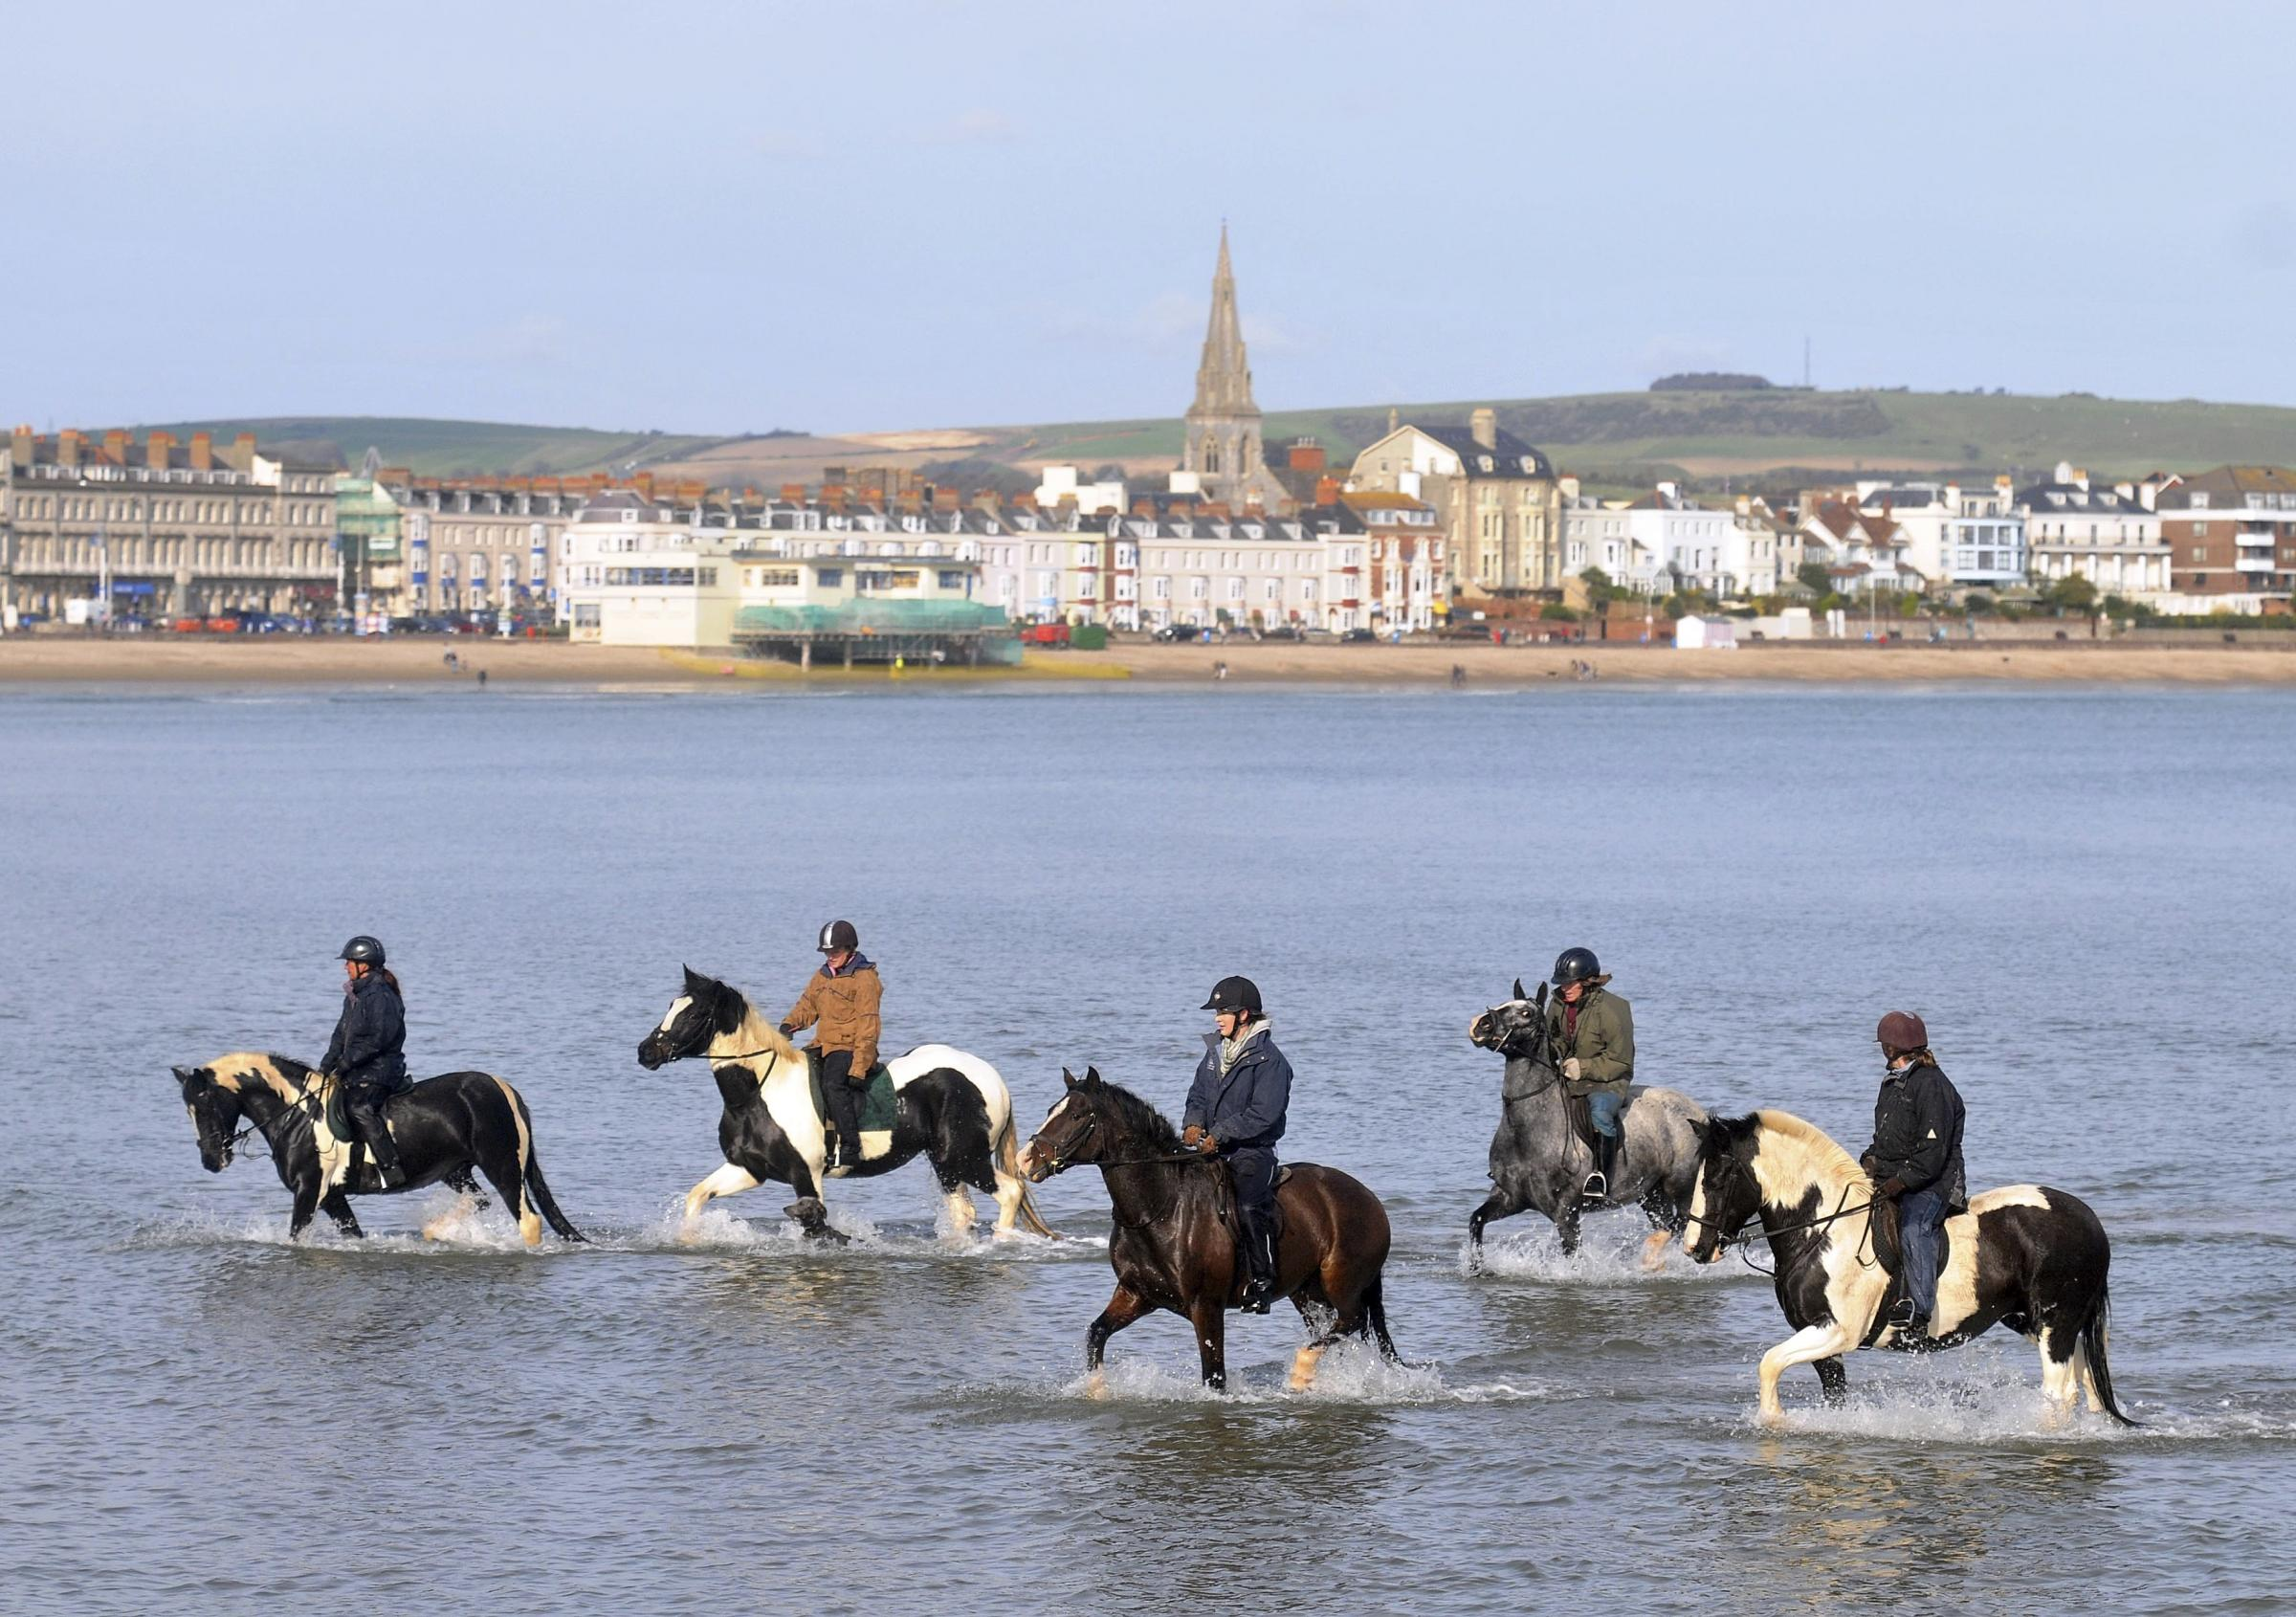 Horses cool off on a sunny Weymouth beach, 291008, Picture: FINNBARR WEBSTER/F7703